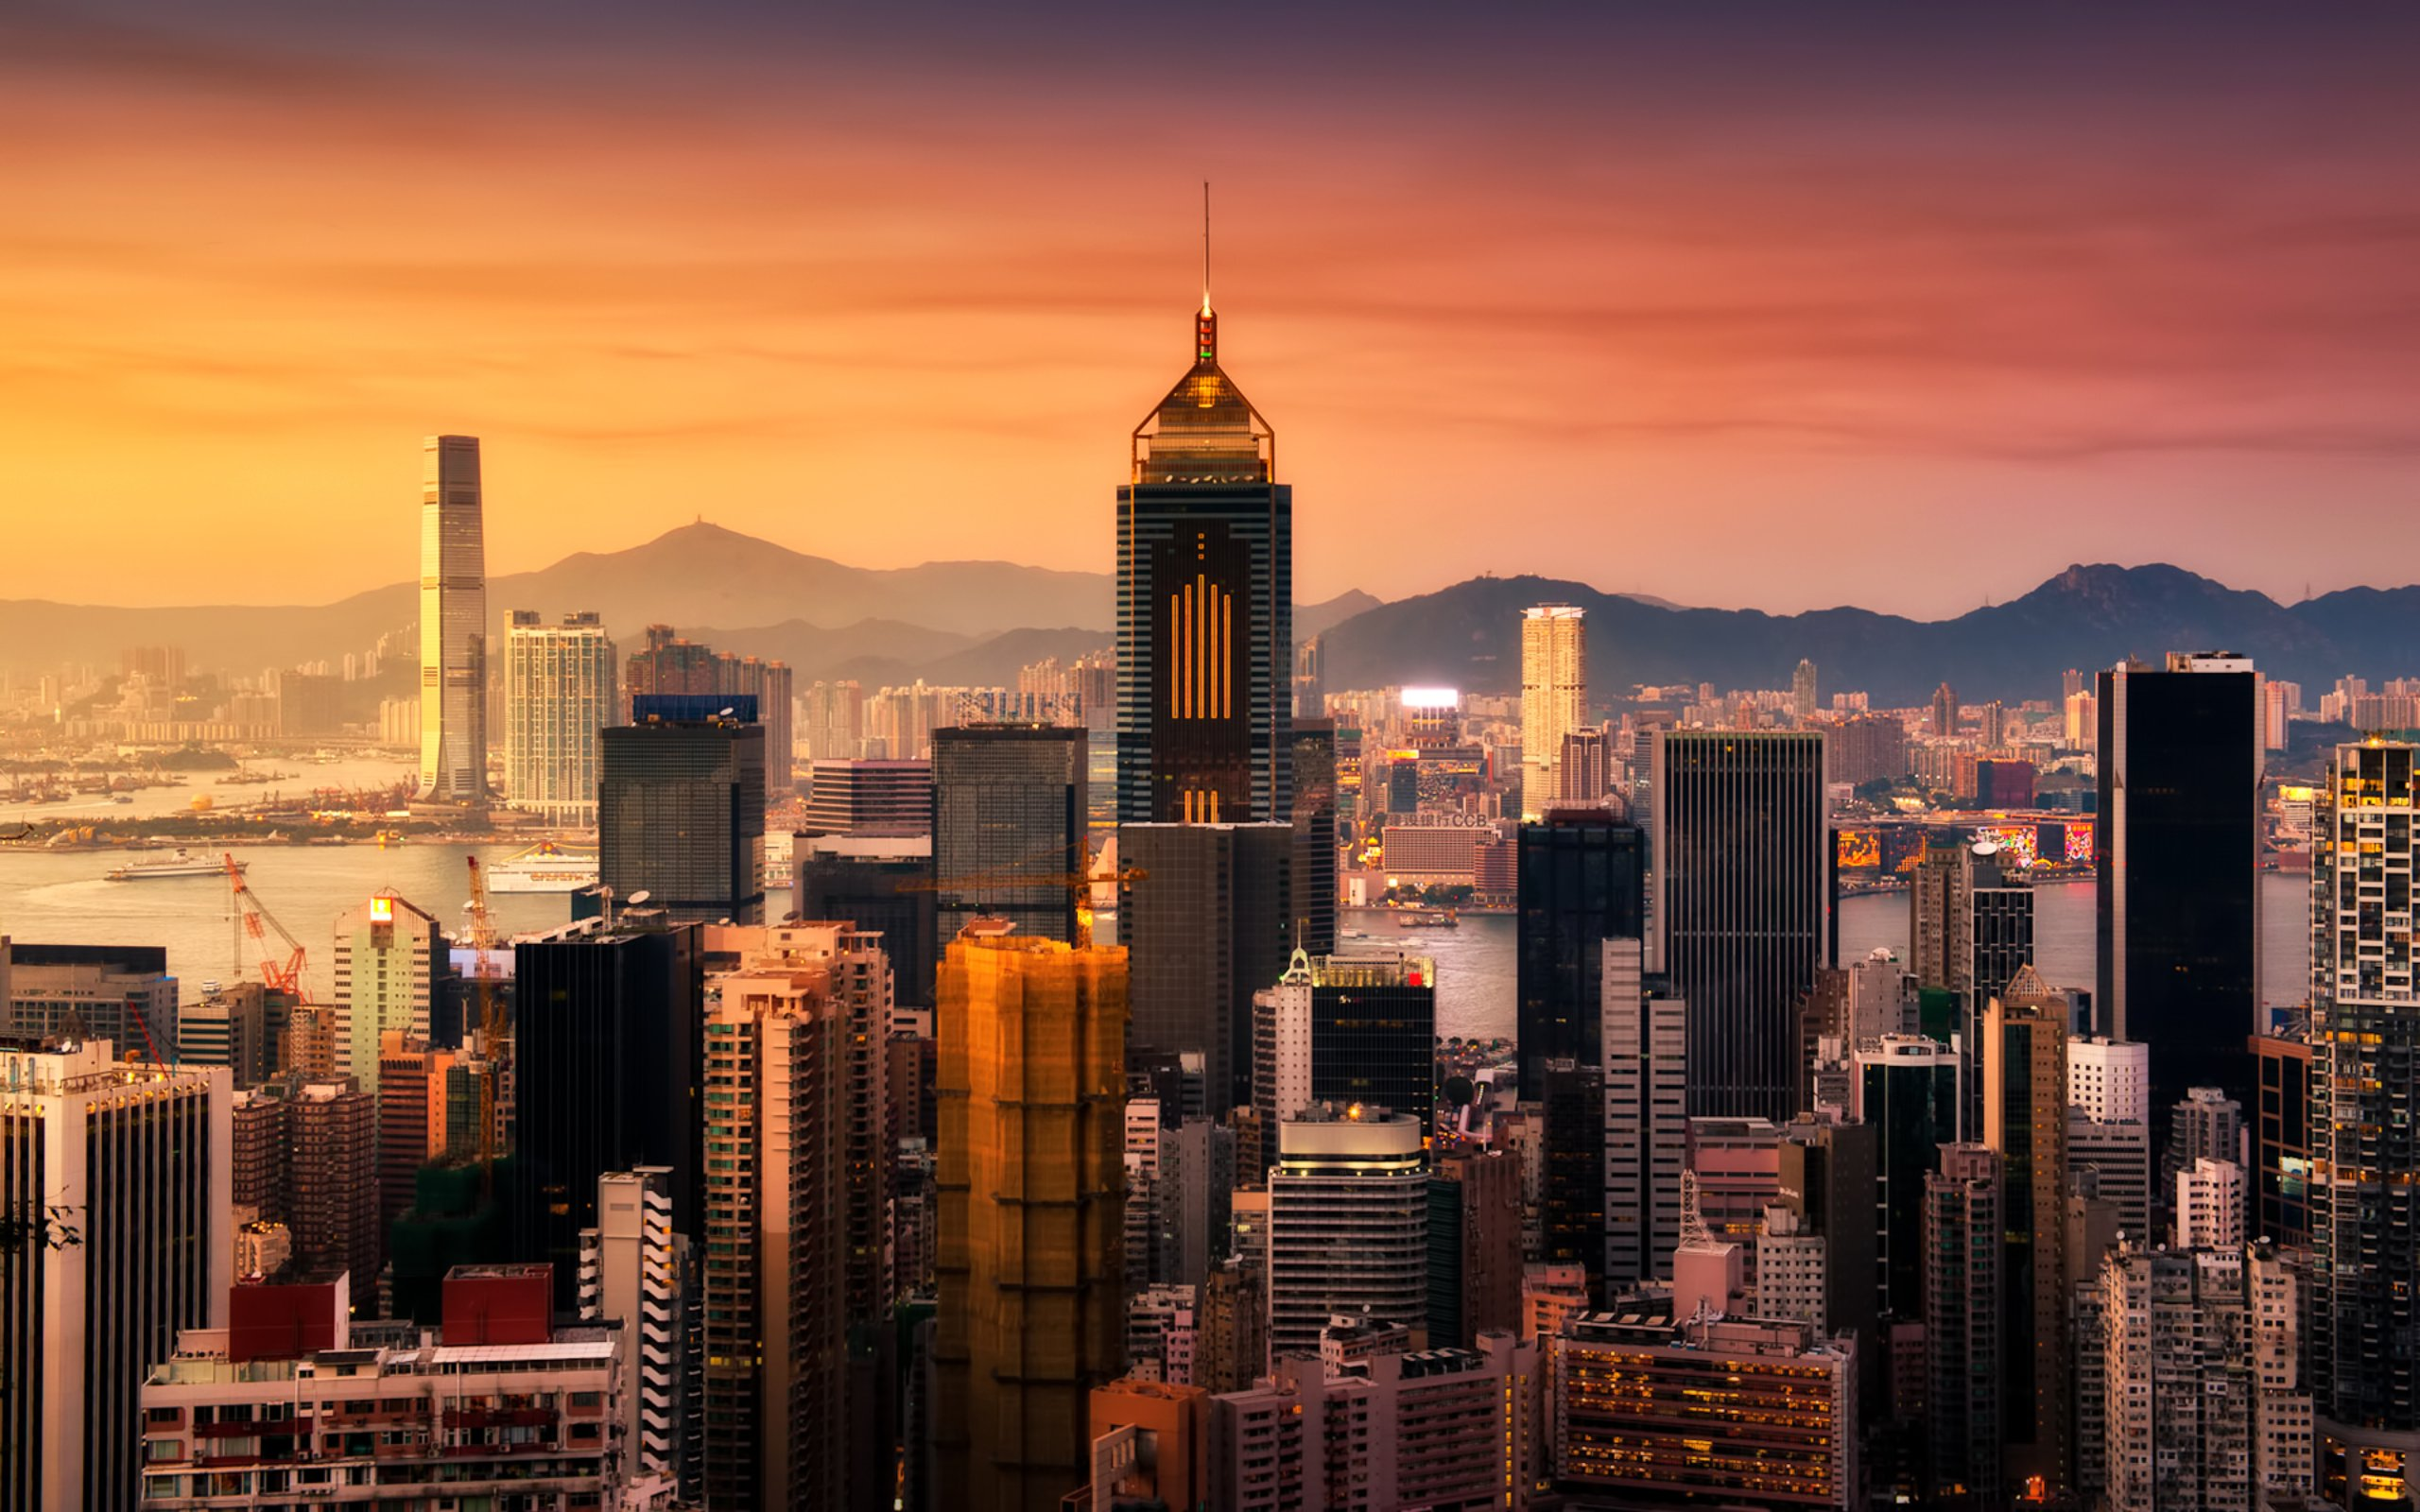 Hong Kong Image Galleries | WHM-38785410 FHDQ Backgrounds